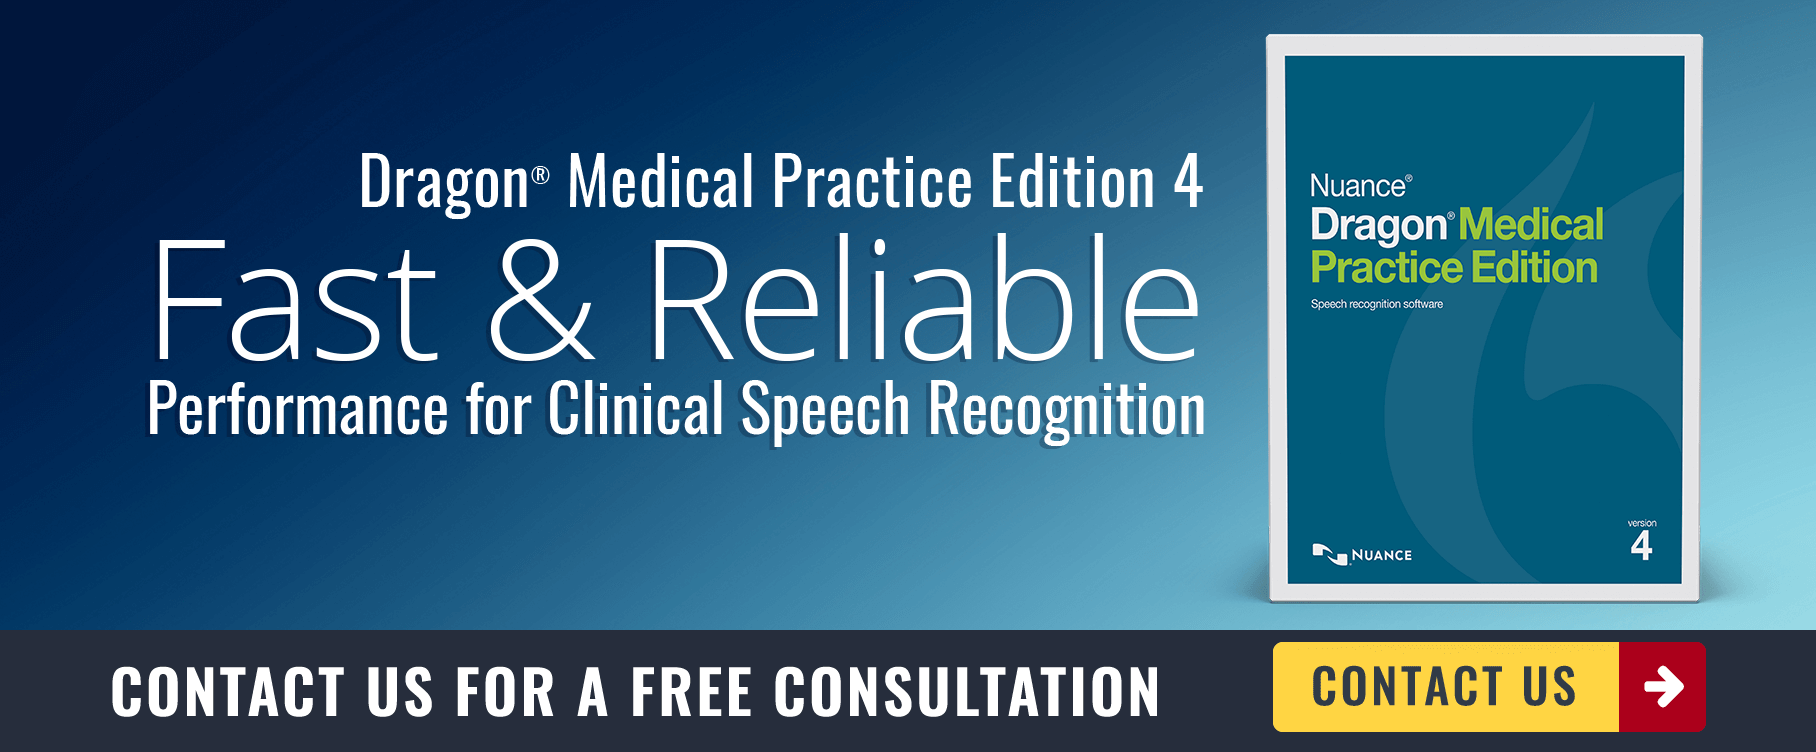 Keep your practice up-to-date - Dragon Medical Practice Edition 4